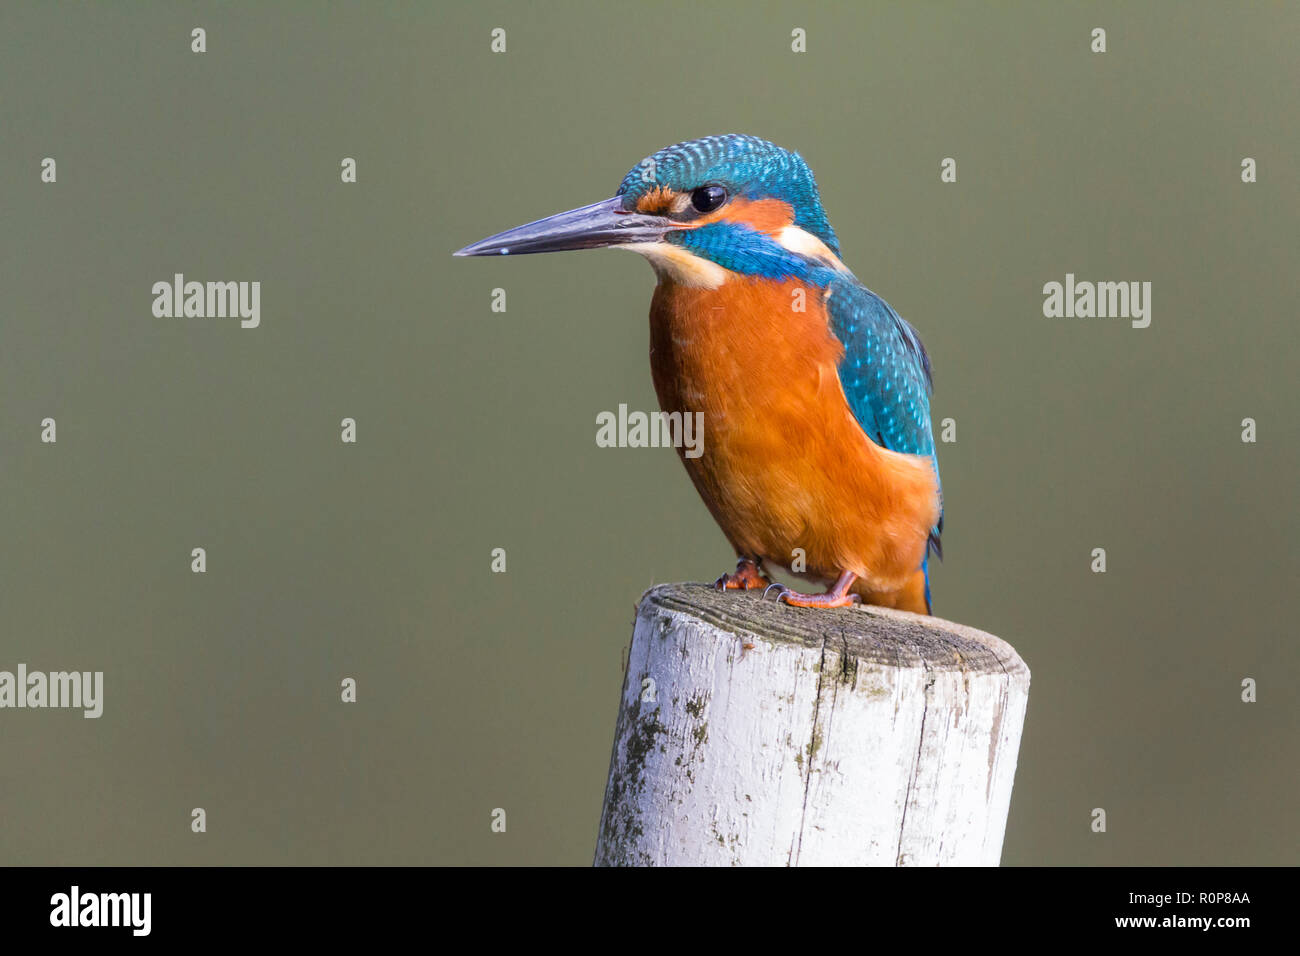 Kingfisher (Alcedo atthis) close up perched on post right in front of bird hide. Large dagger like black bill (male) electric blue and orange plumage. - Stock Image